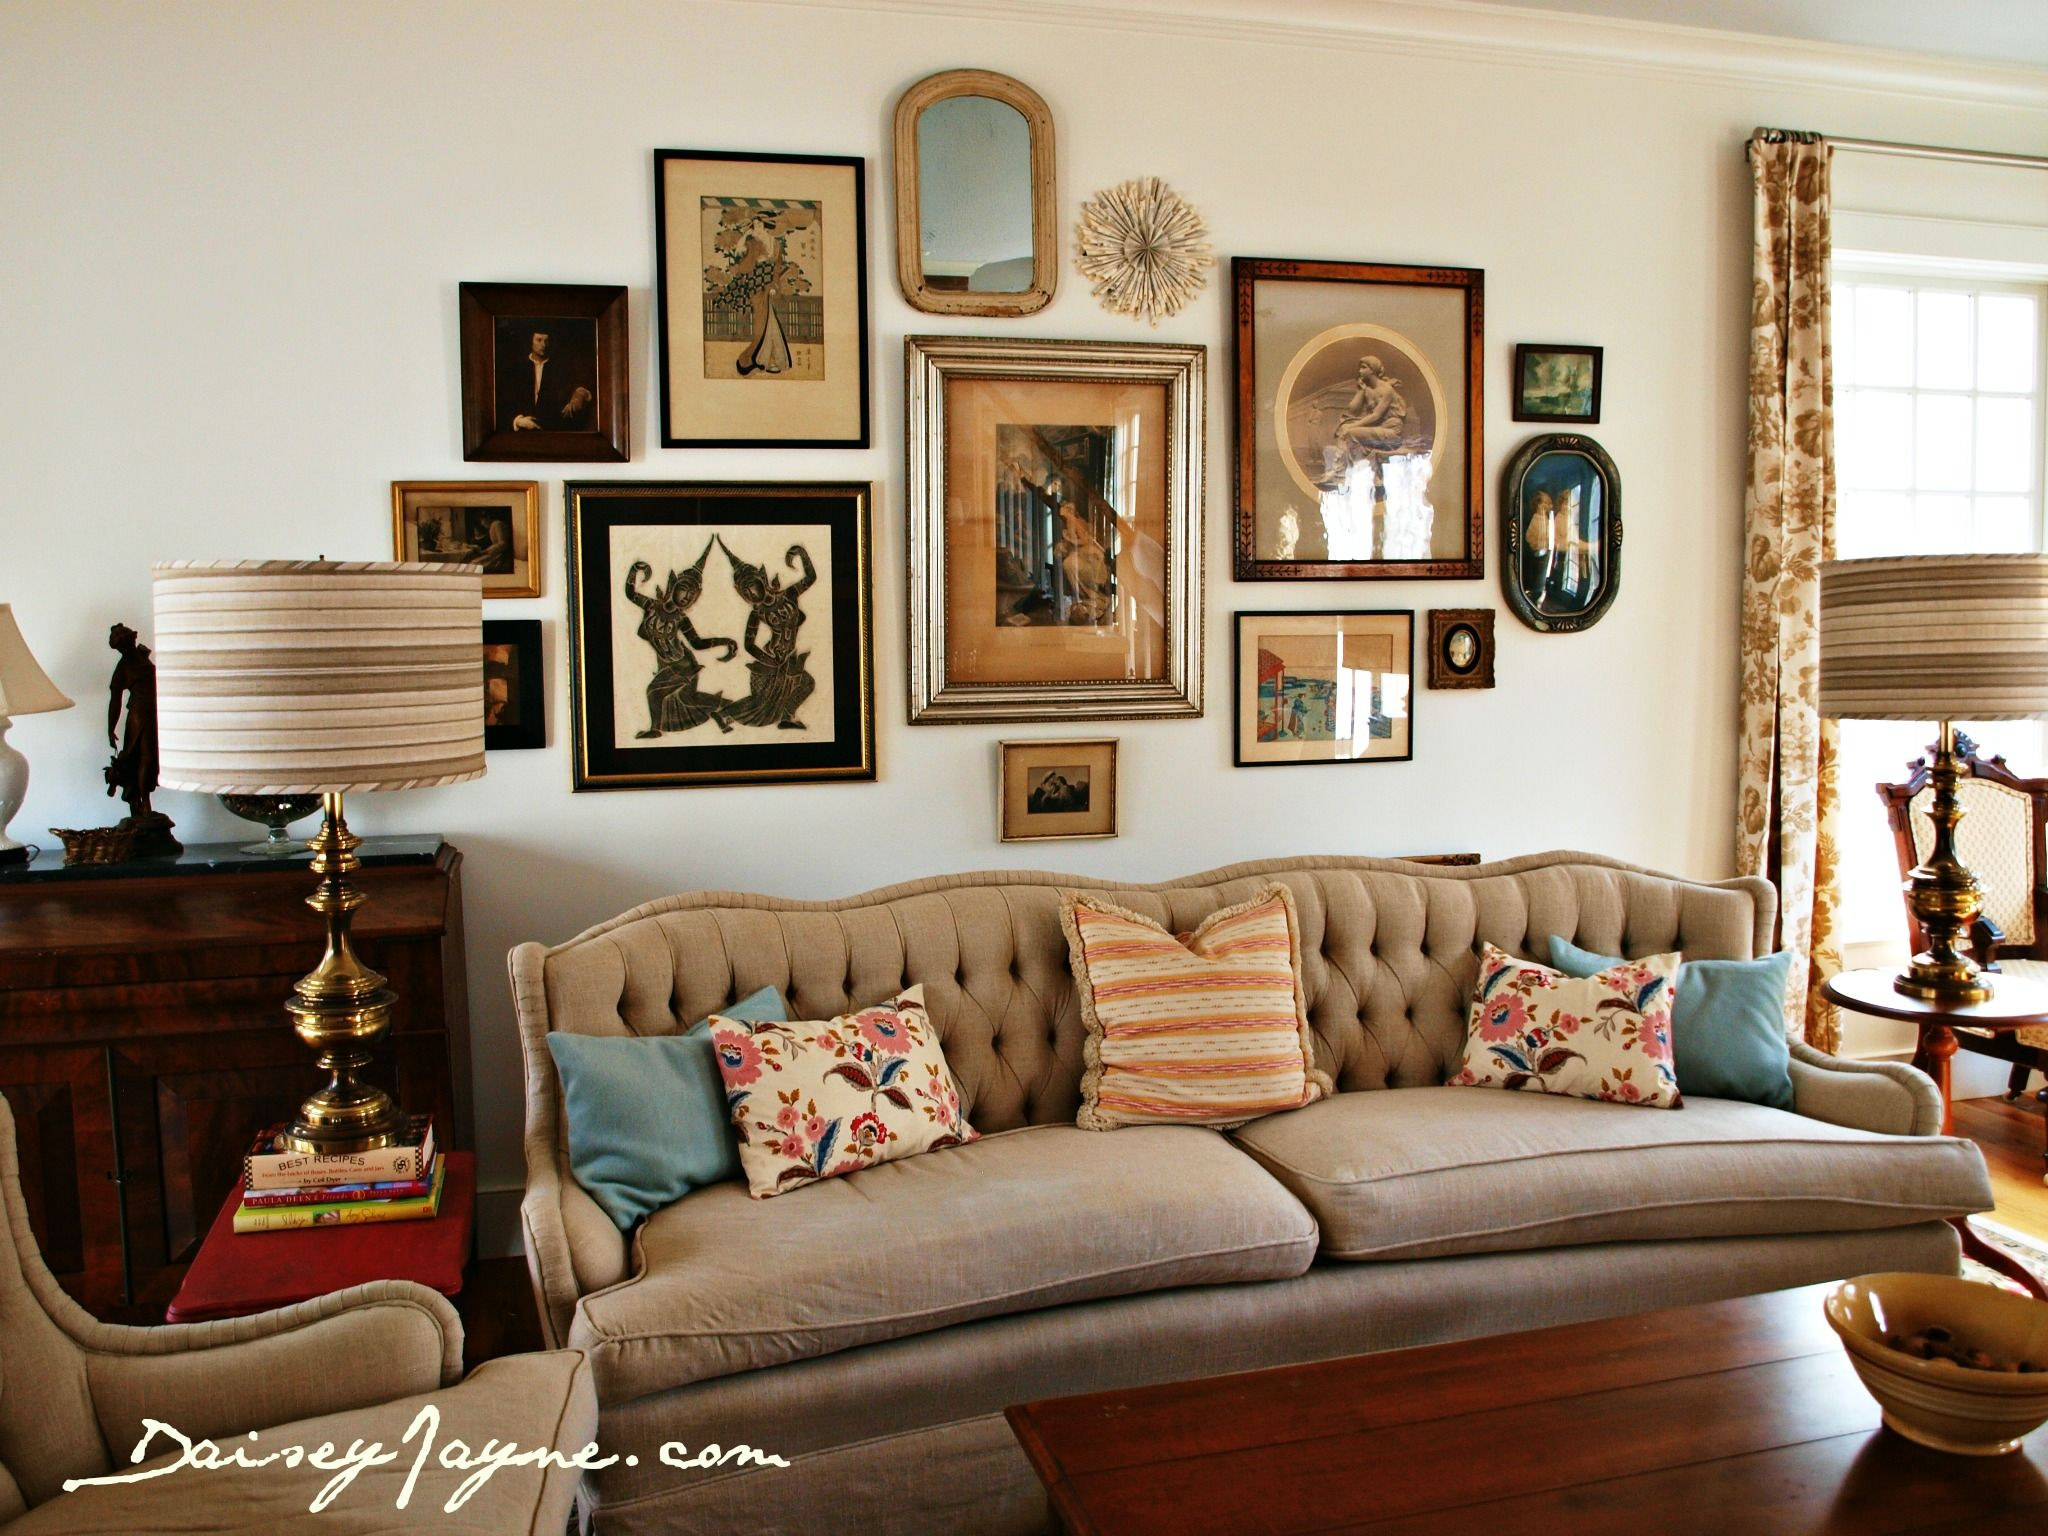 Interesting Gallery Wall Gallery Walls A Solution For More Artwork Than Wall Space Vintage Living Room Living Room Wall Vintage Living Room Design #vintage #living #room #wall #decor